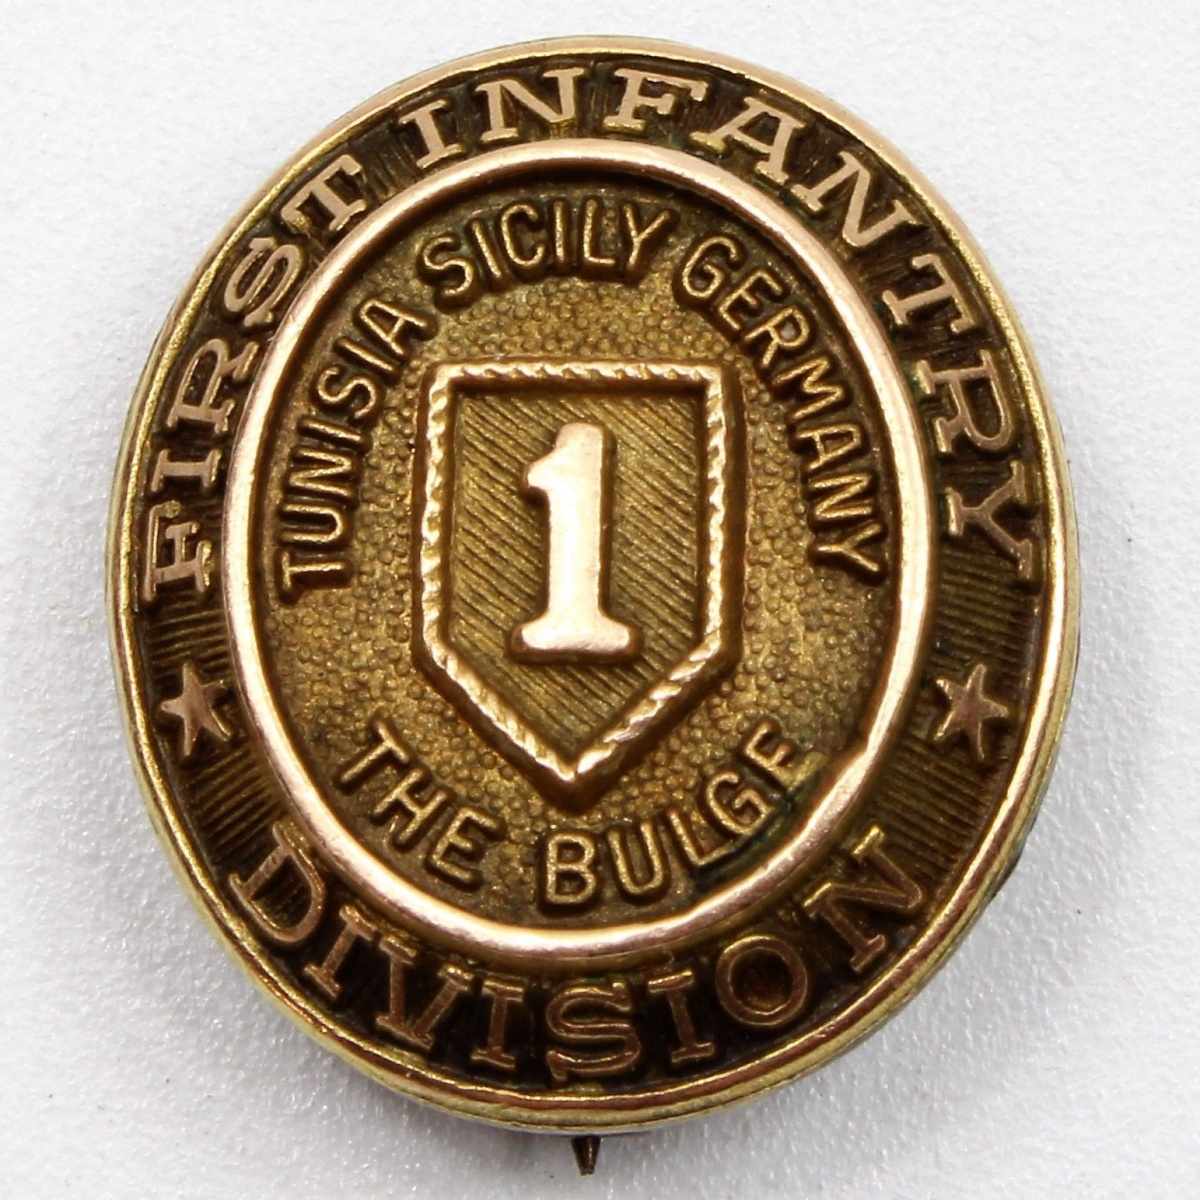 WWII US Army 1st Infantry Division 10k Gold Pin Tunisia Sicily Germany Battle Of The Bulge